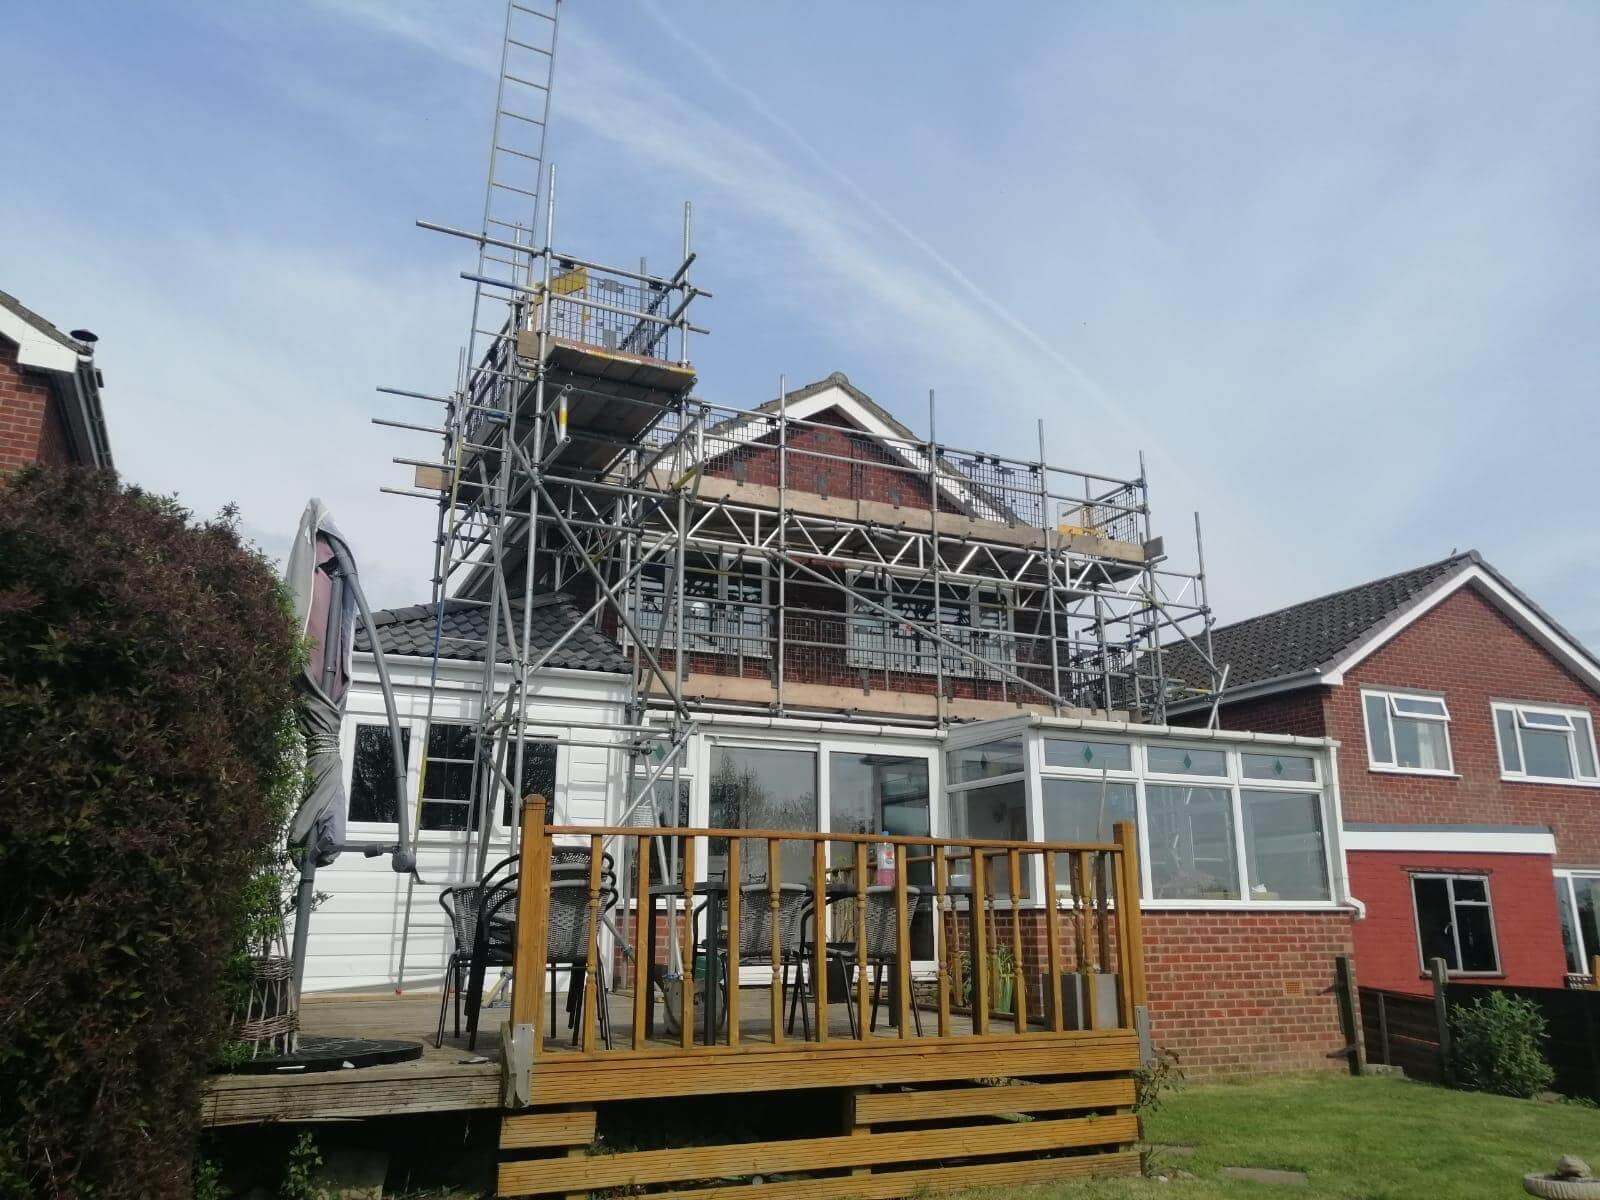 Scaffolding Hire and Rental in Bristol